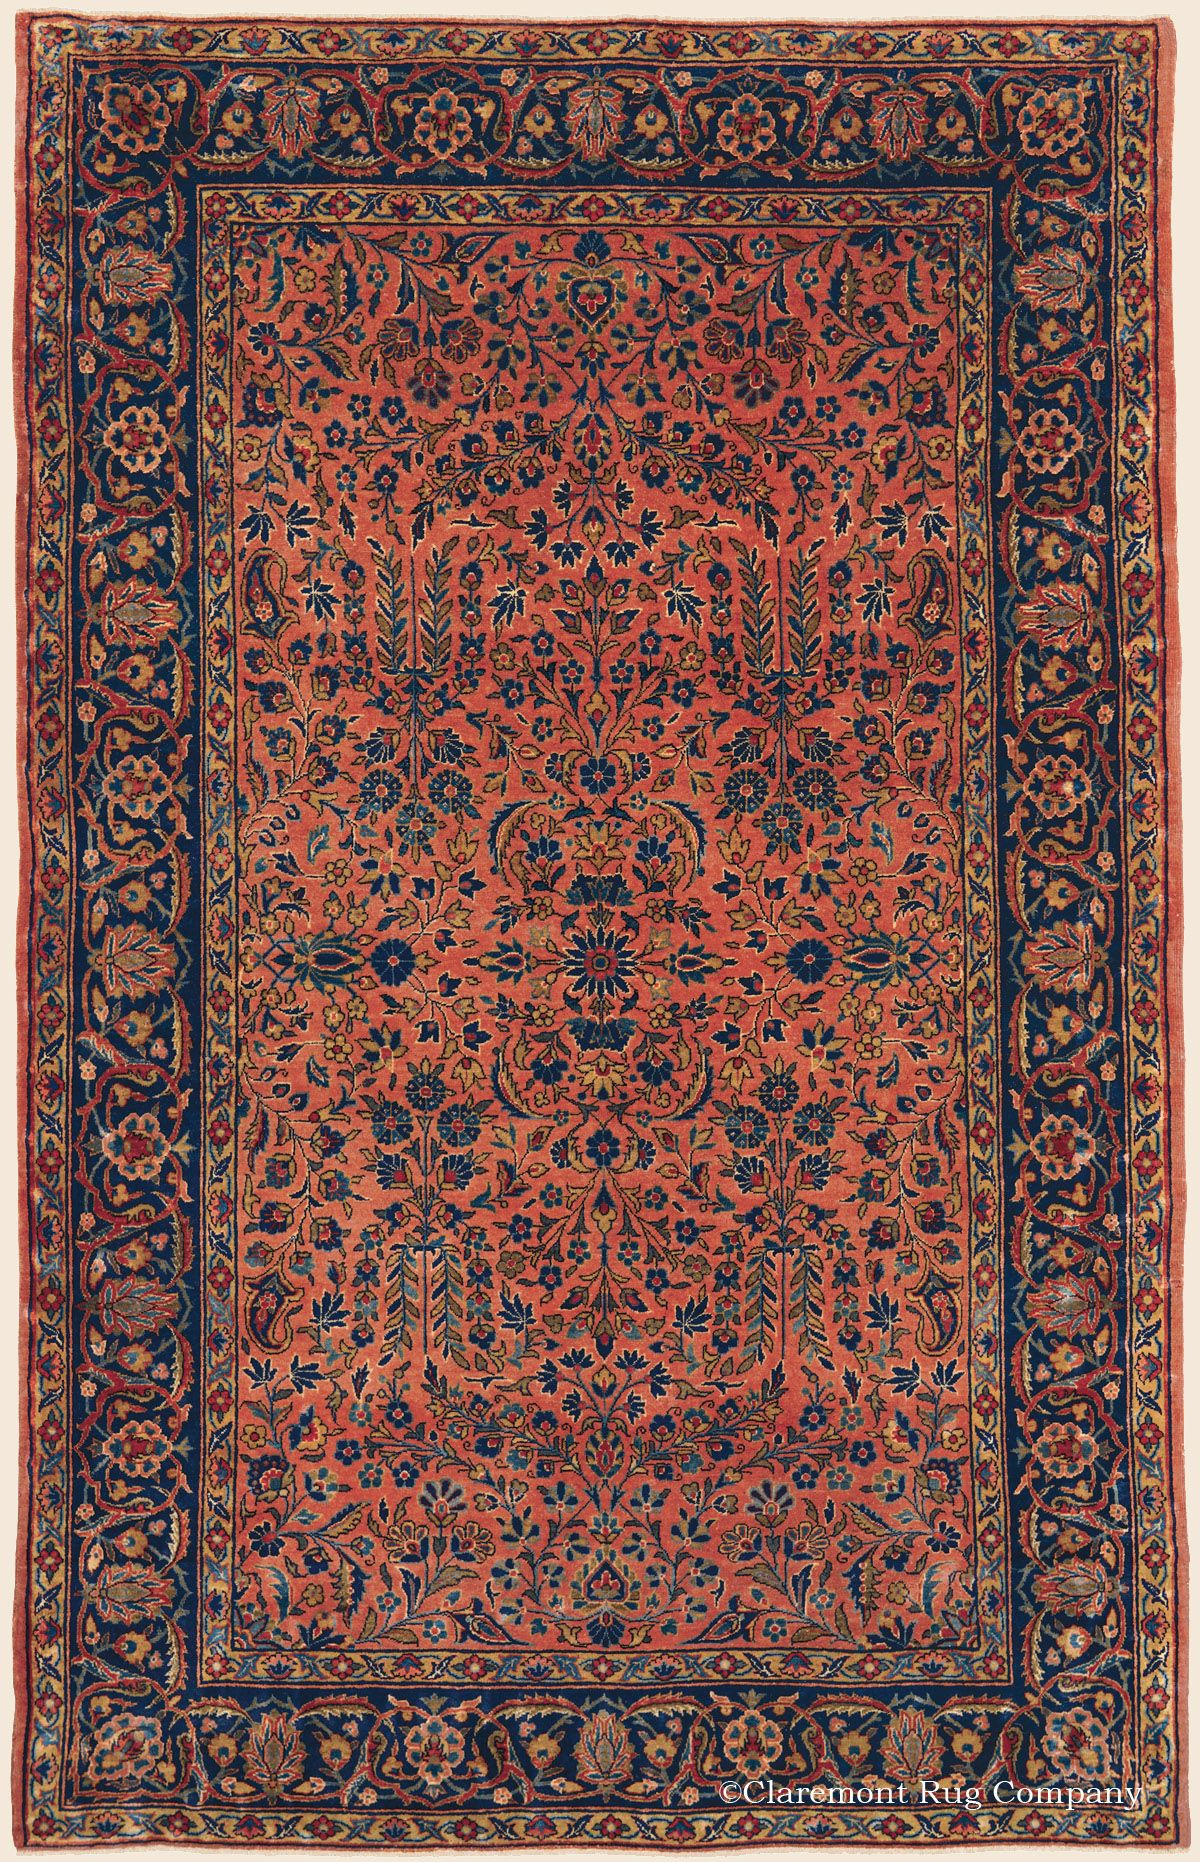 Antique Circa 1920 Central Persian High